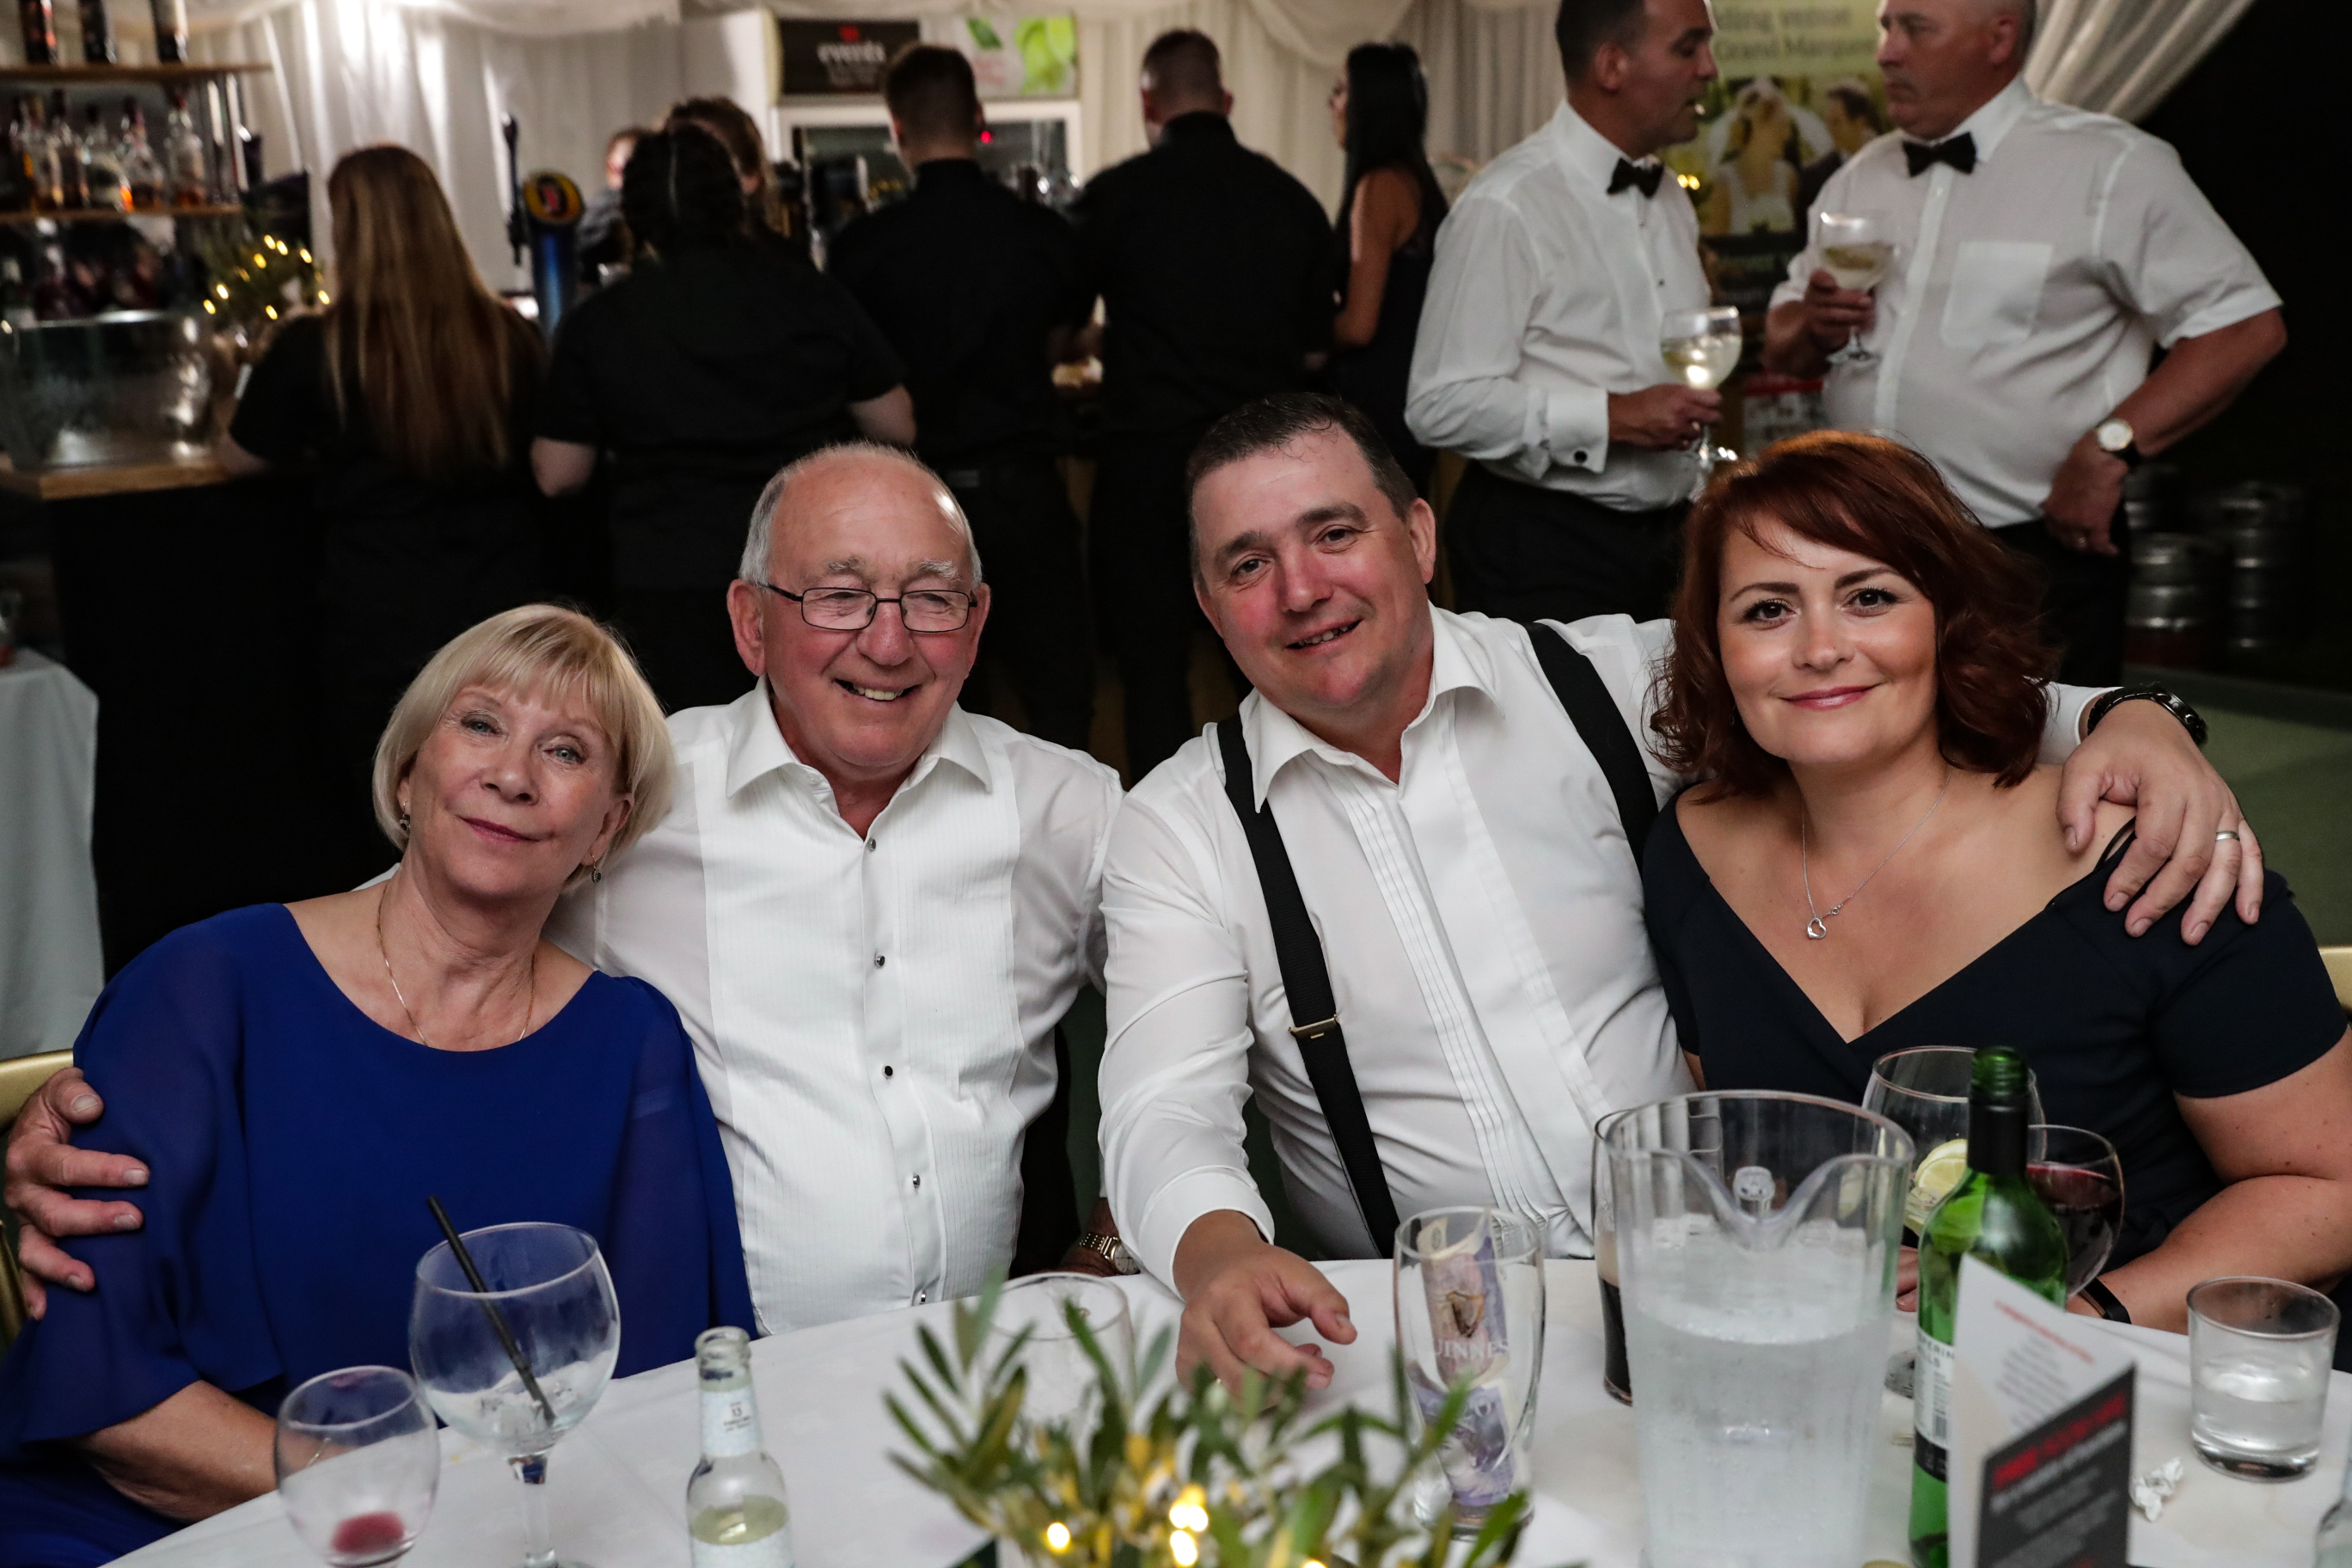 Burntwood Rugby Club Summer Ball 2019